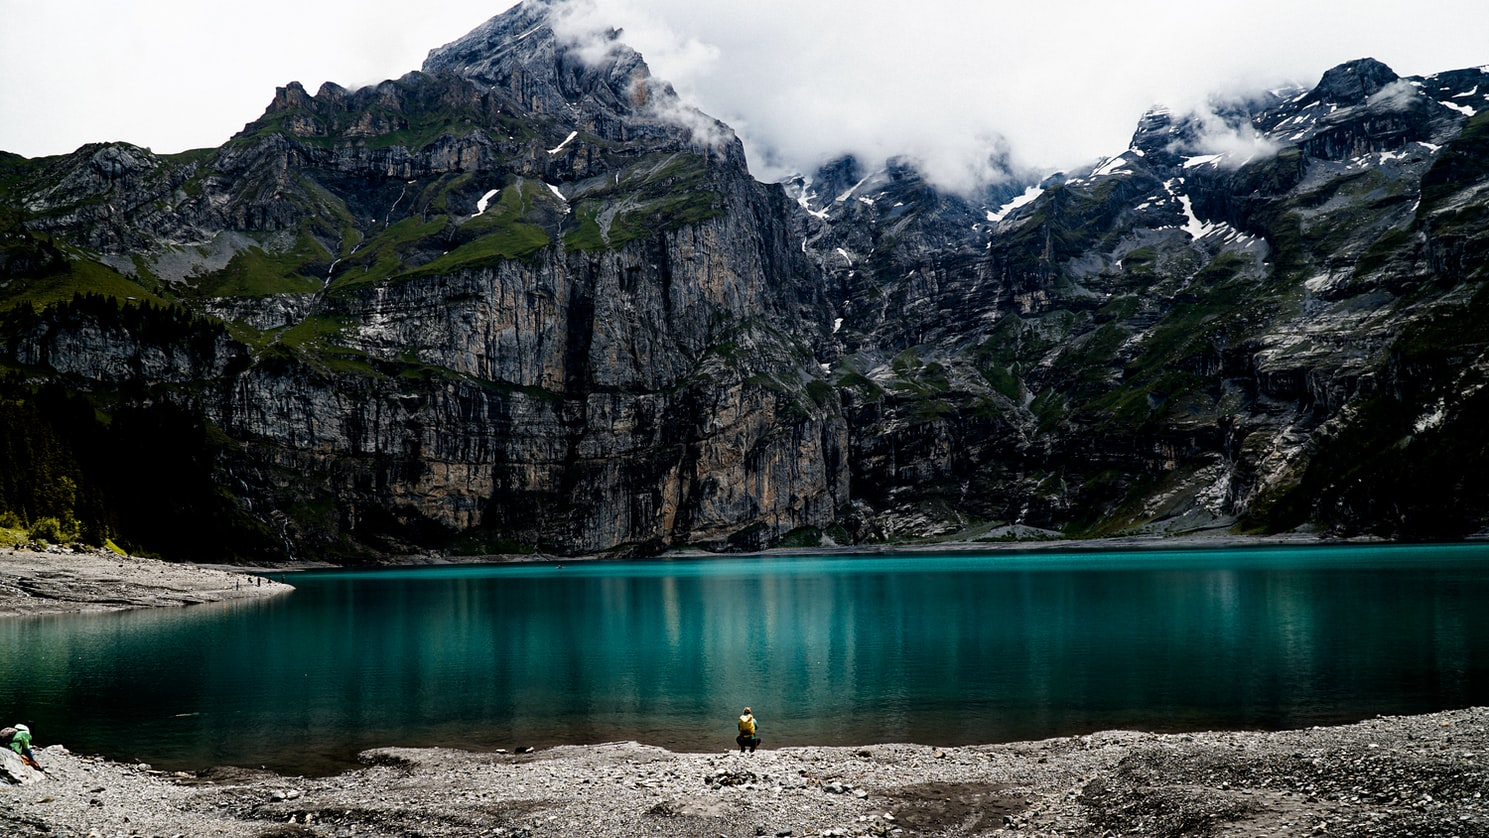 Oeschinensee Lake, Best Hiking Places in Switzerland